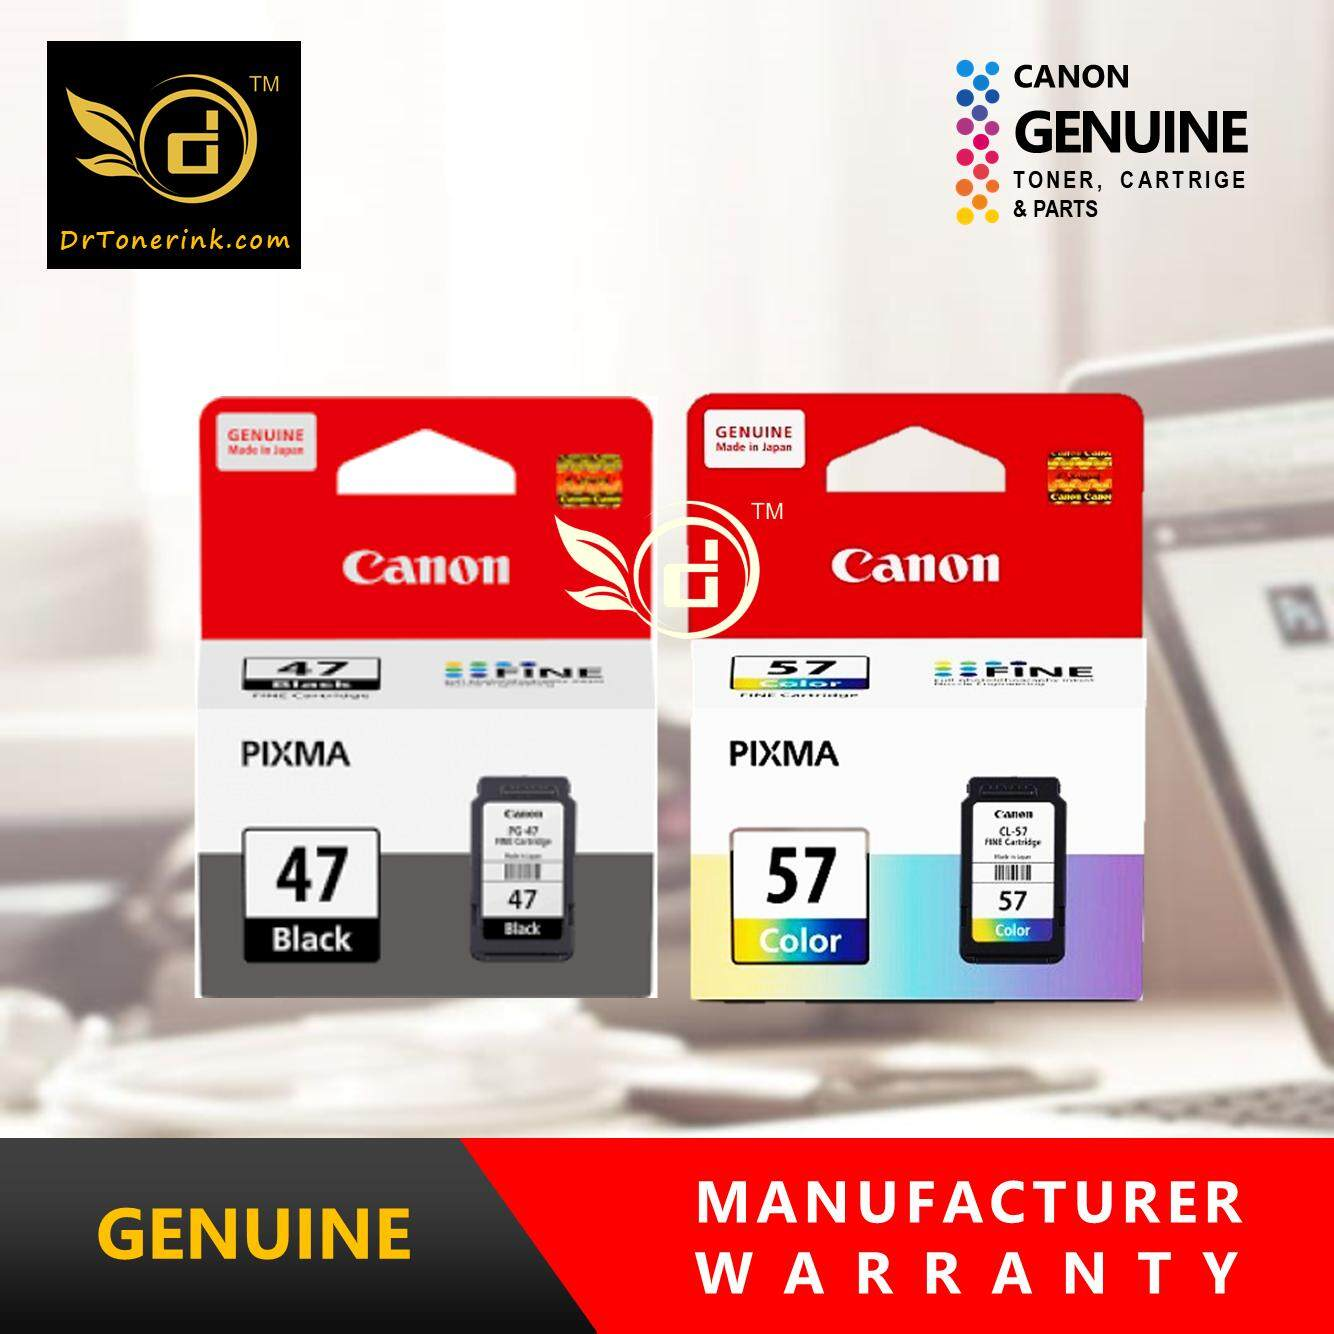 Genuine Original Ink Canon PG-47(15ML) & CL-57(13ML) - PG47 + CL57 - COMBO  - PiXMA E400 / E410 / E460 / E470 / E480 - by DrToner